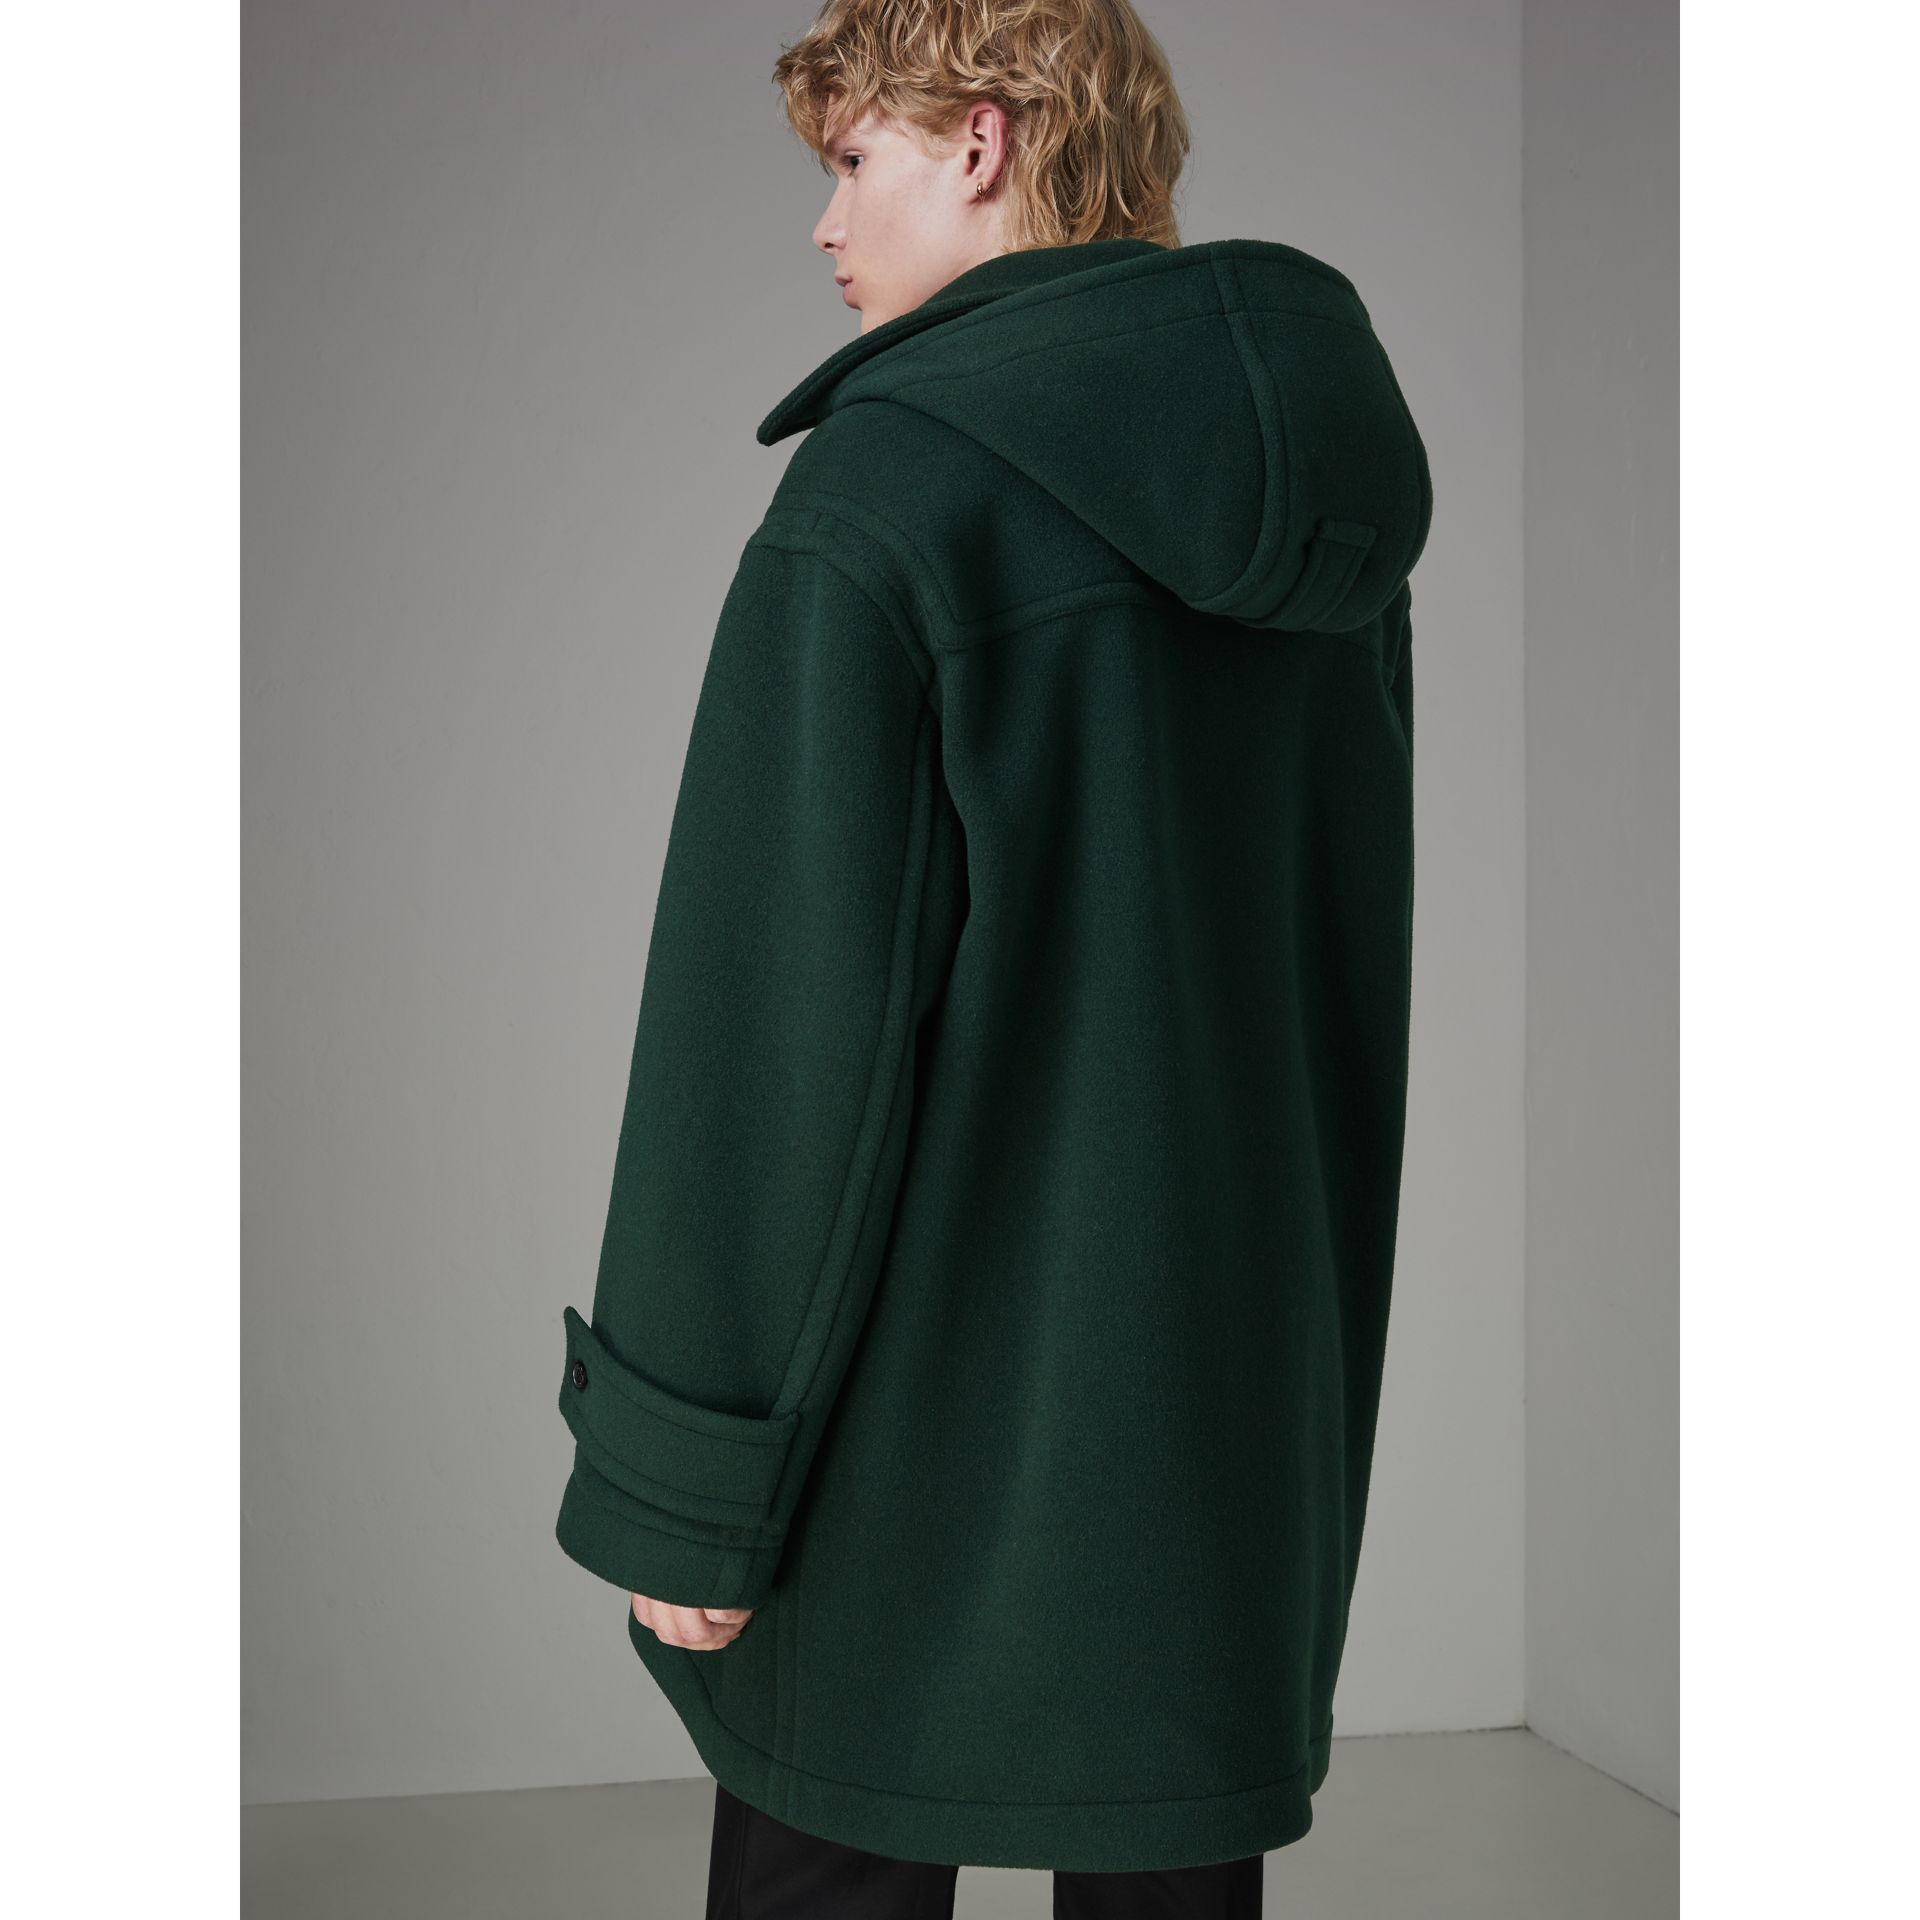 Gosha x Burberry Oversized Duffle Coat in Dark Forest Green | Burberry - gallery image 7